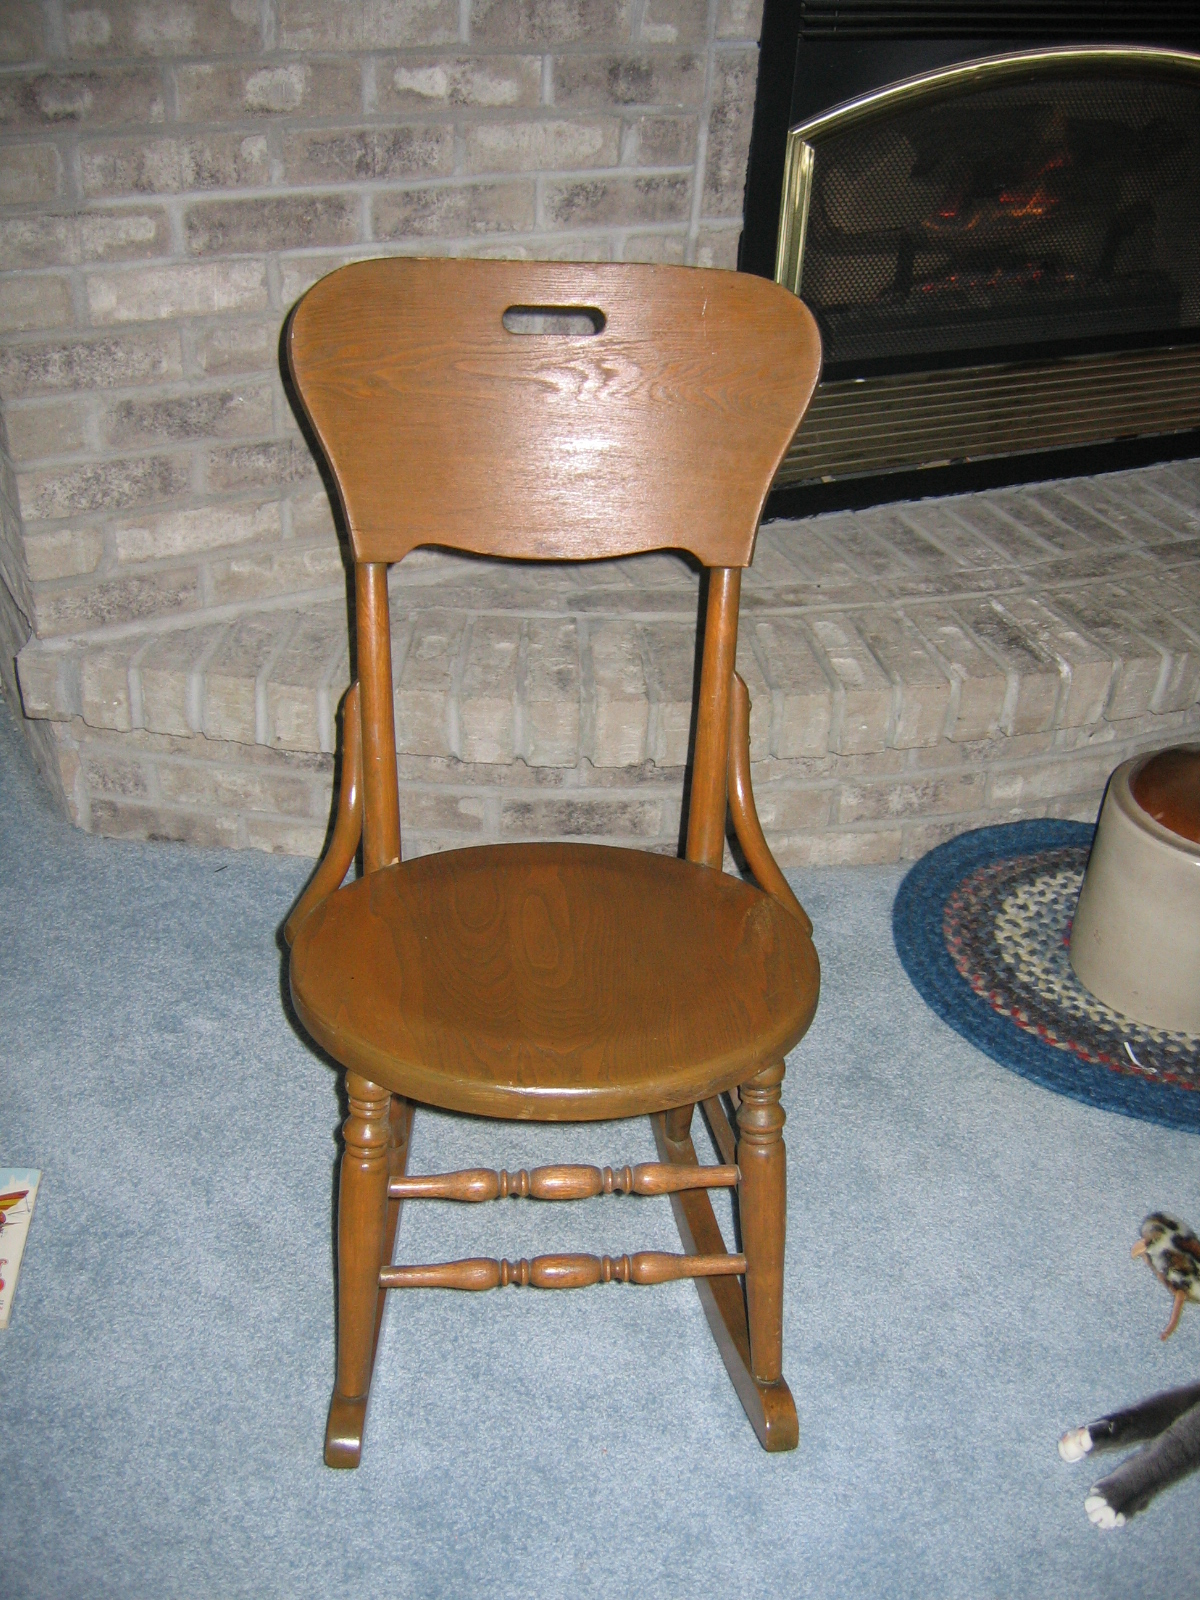 antique rocking chairs for sale steel chair leg glides vintage ladies knitting wood item 811